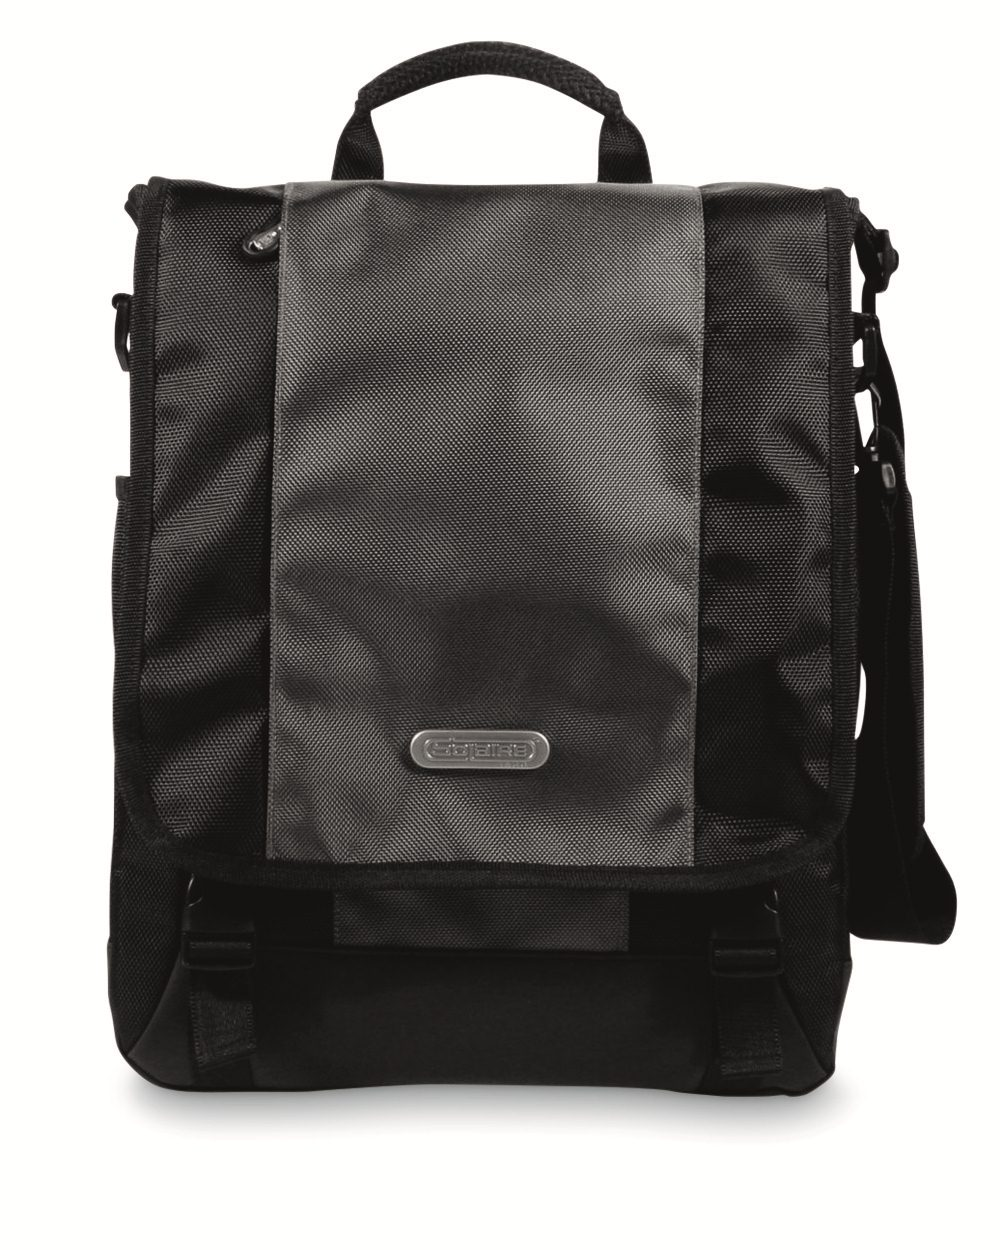 Valubag Laptop Briefcase/Backpack - VB1158